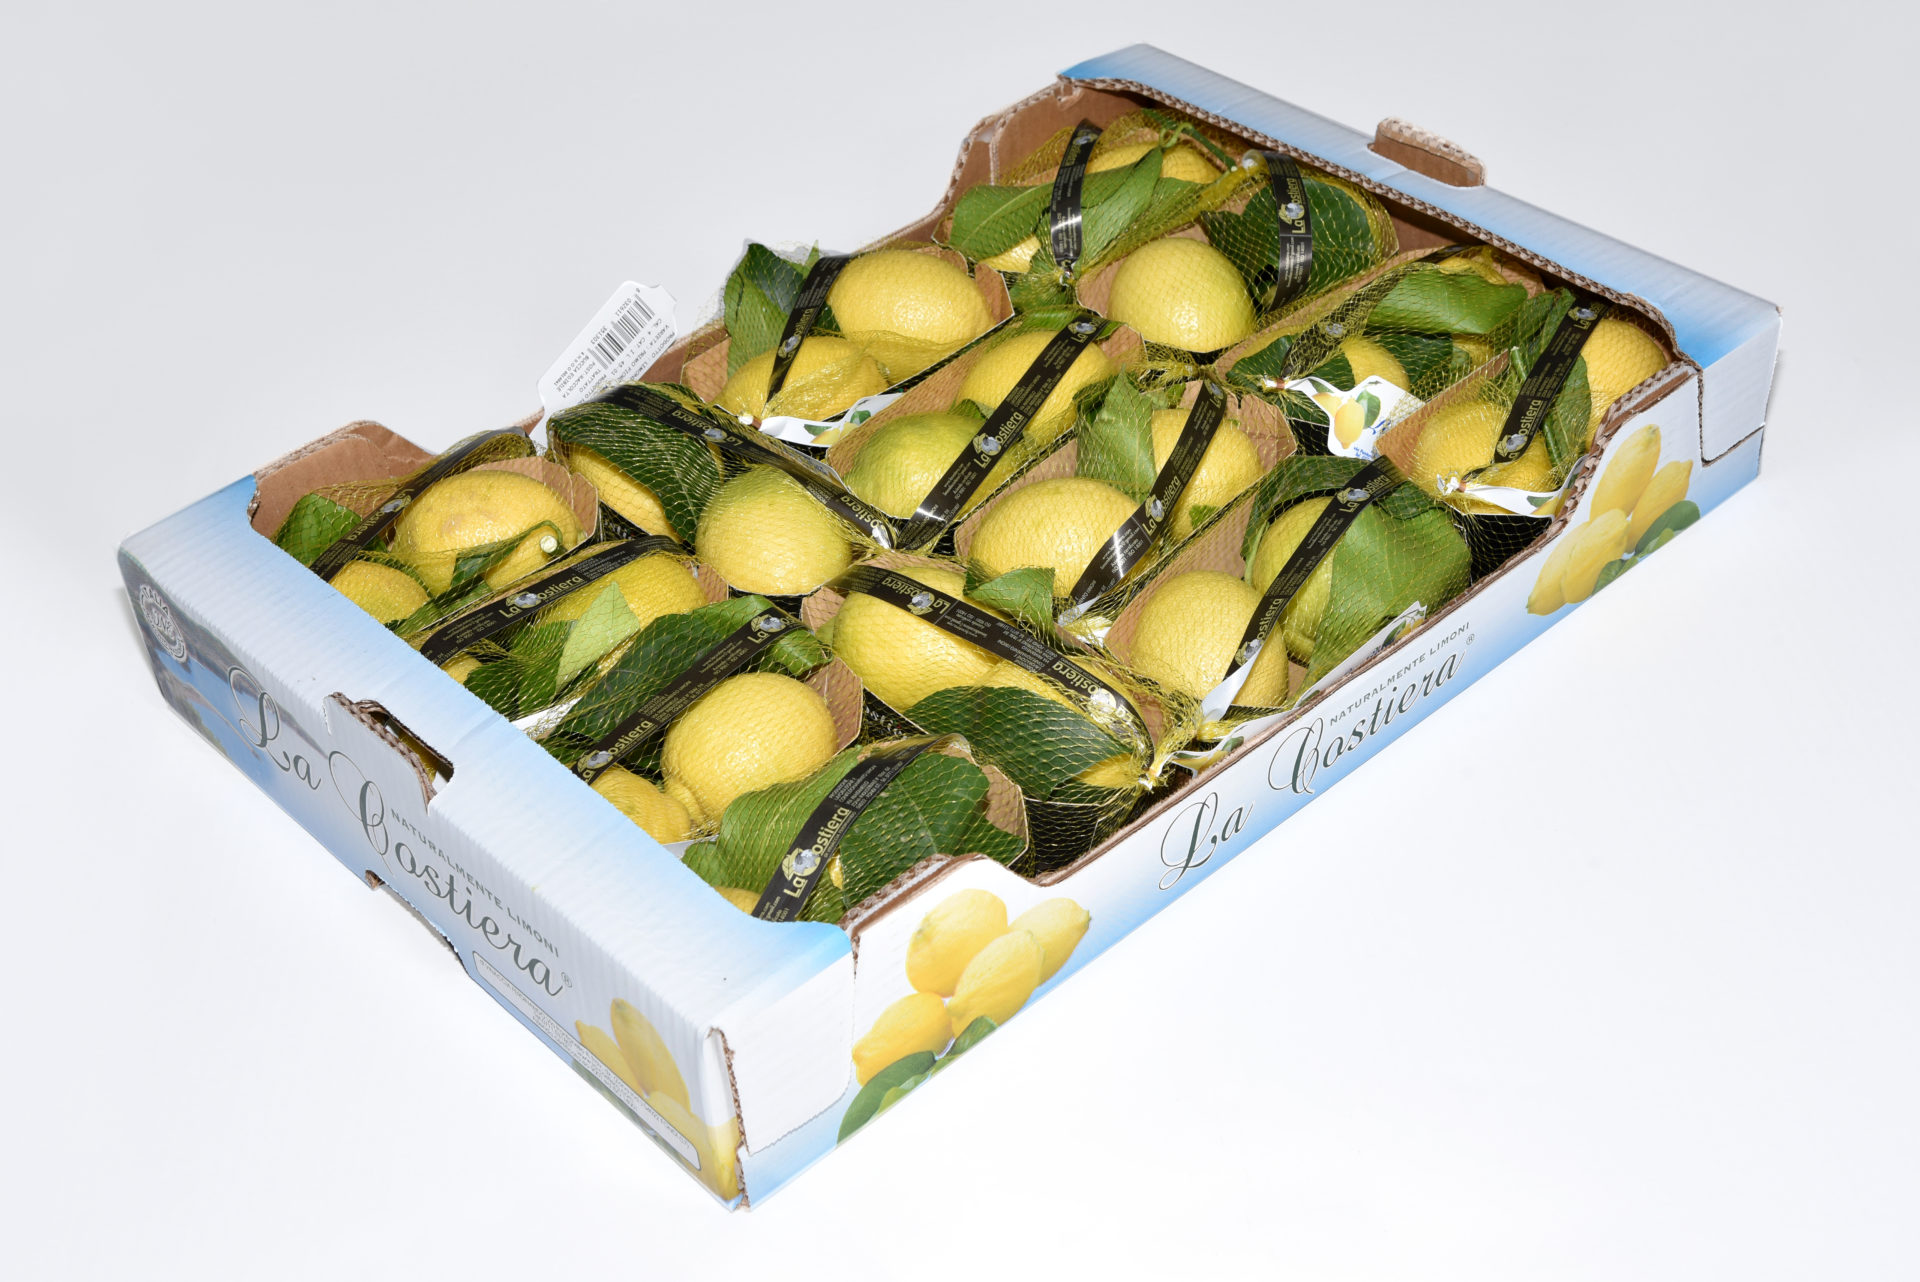 Lemon Primo Fiore leaf caliber 4 Category 1 4.2Kg